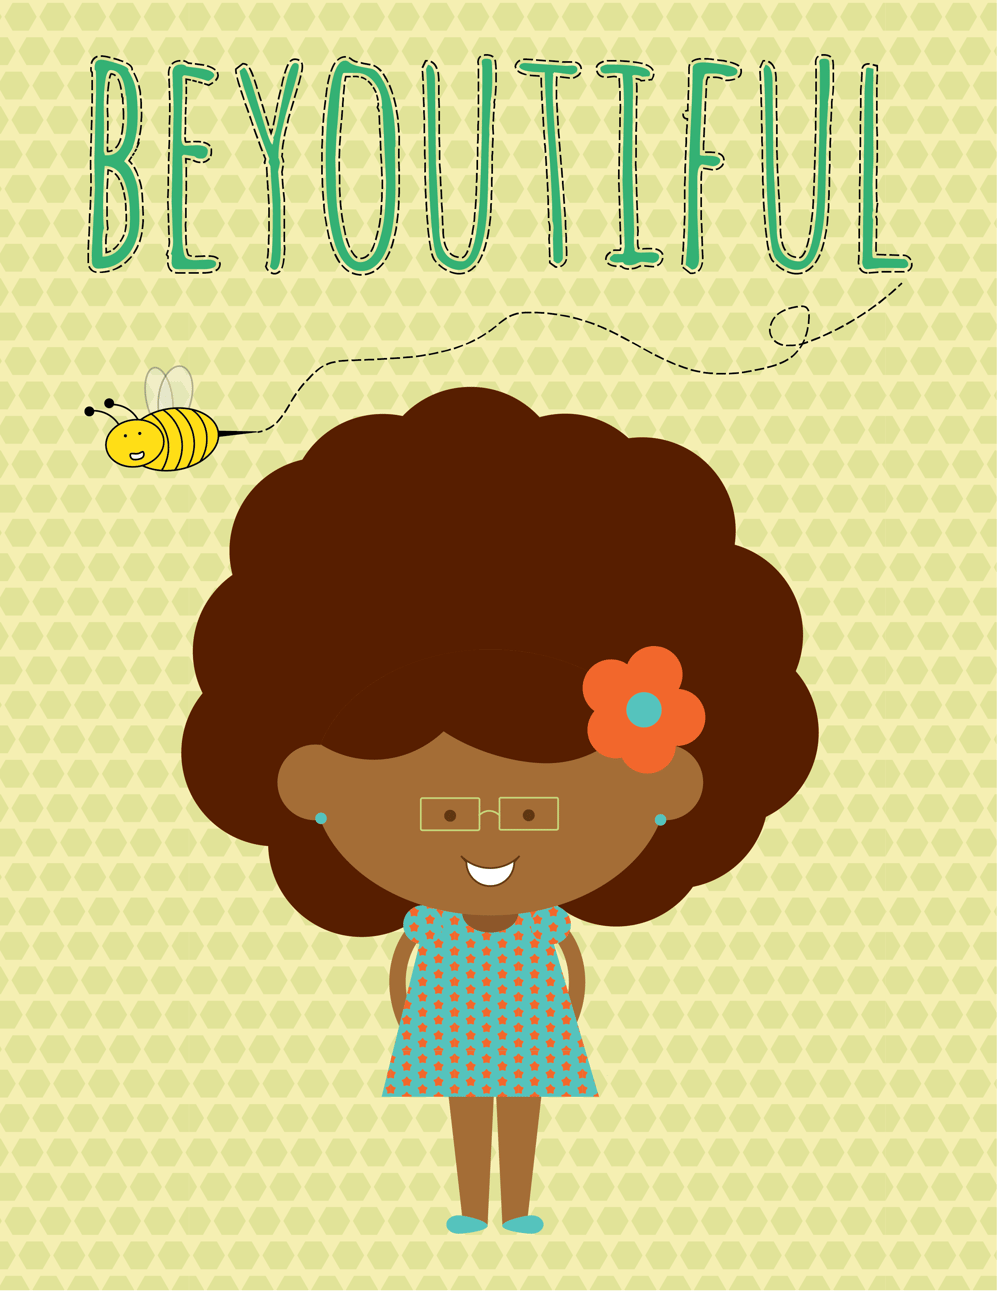 My BeYOUtiful Character - image 1 - student project